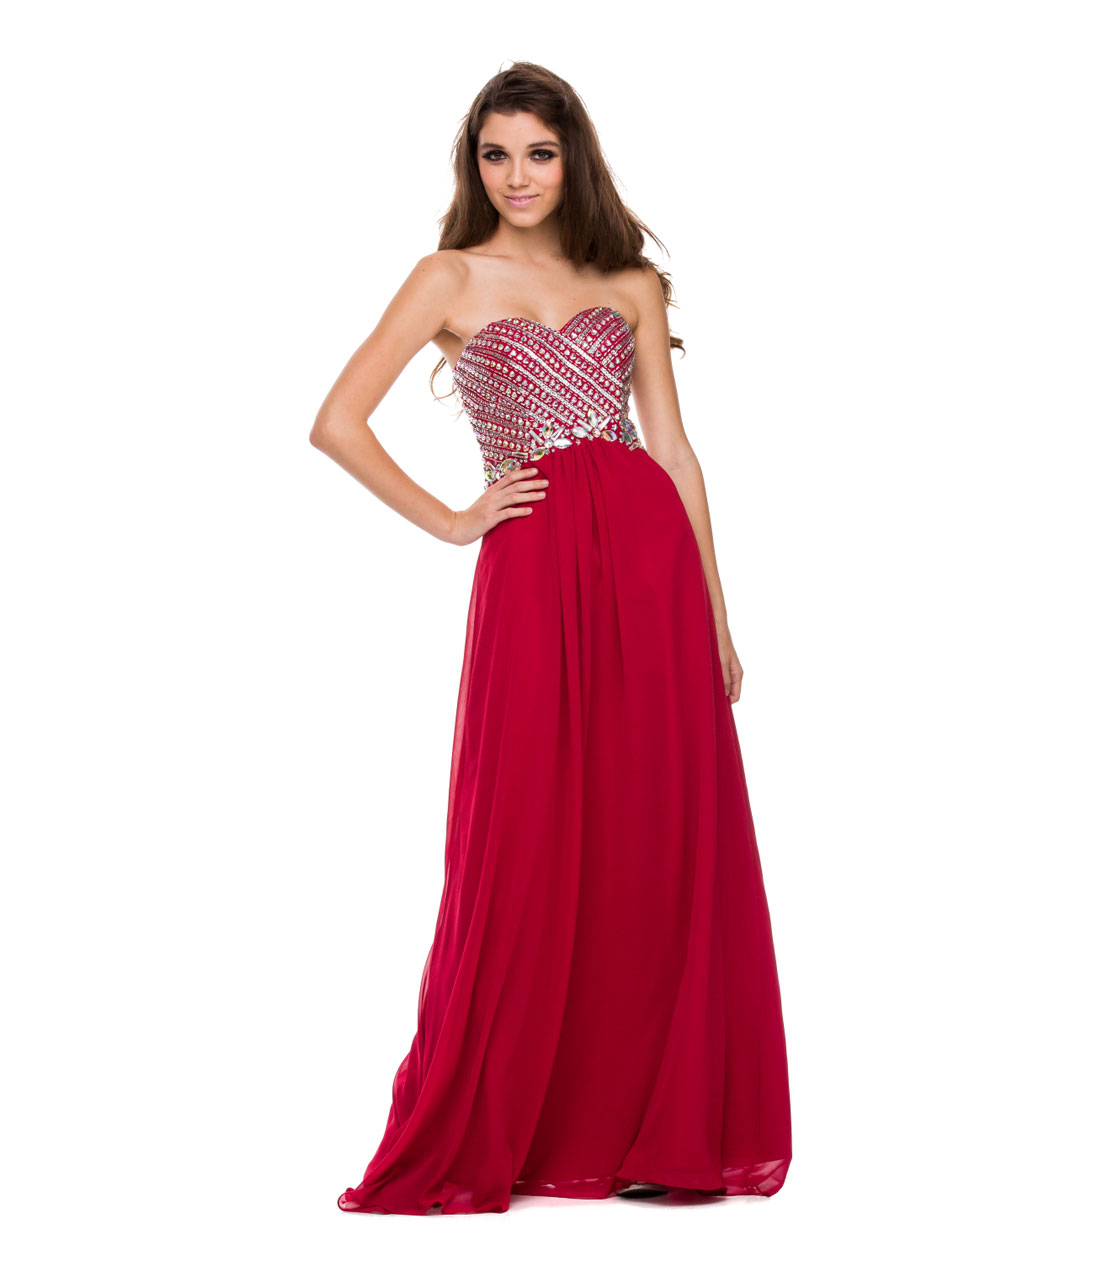 Homecoming Dresses Dillards - Long Dresses Online